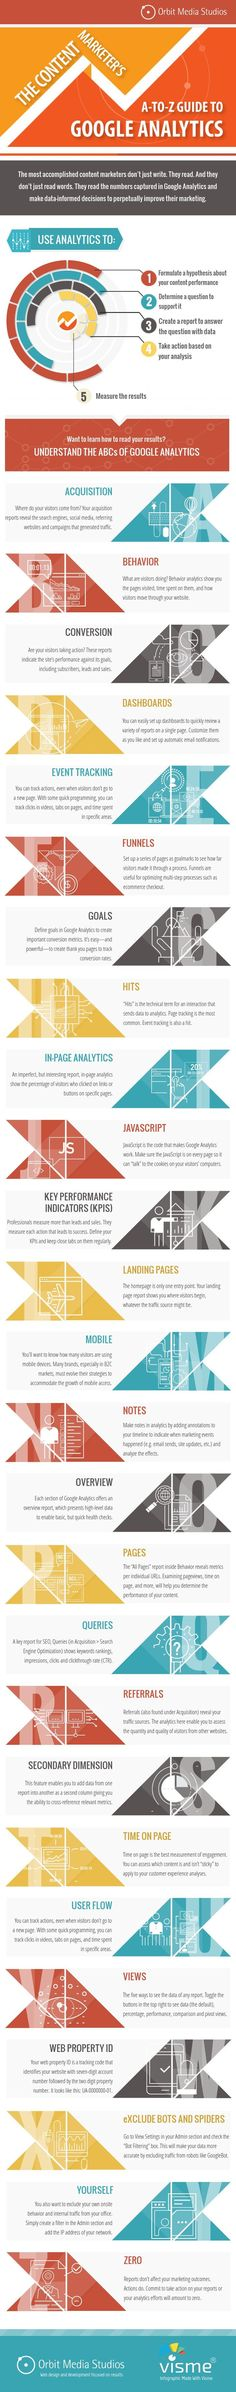 """KPIs und Analysen im Content Marketing: """"Google Analytics: The A-to-Z Guide for Content Marketers"""" [Infographic] via Social Media Today"""